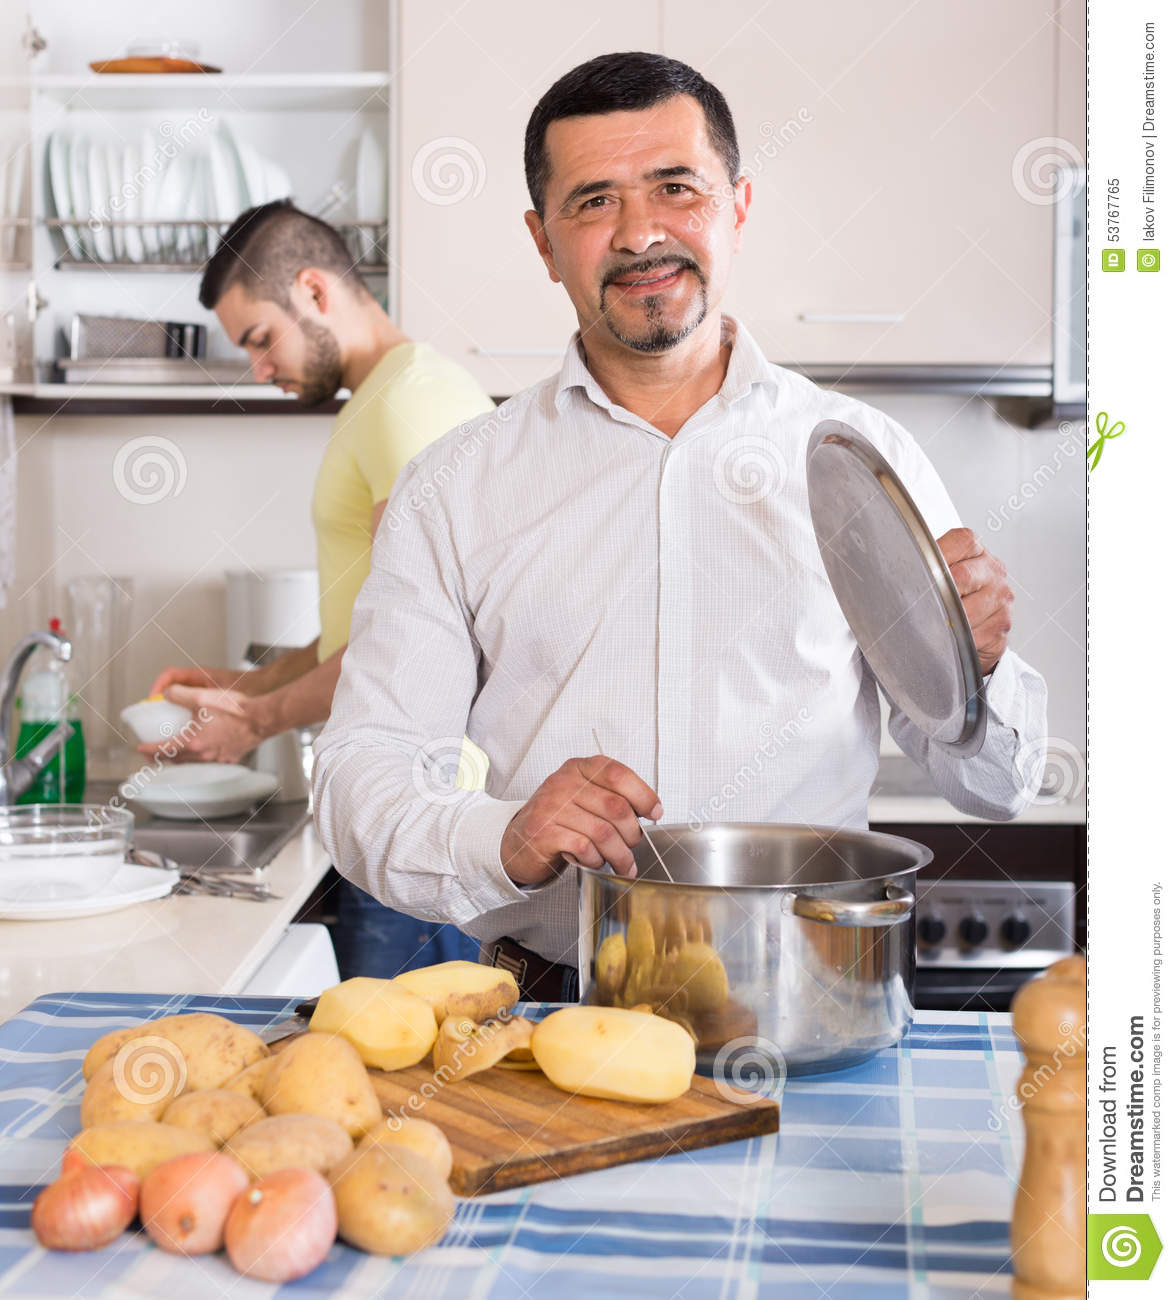 Two Men Cooking At Home Stock Photo - Image: 53767765